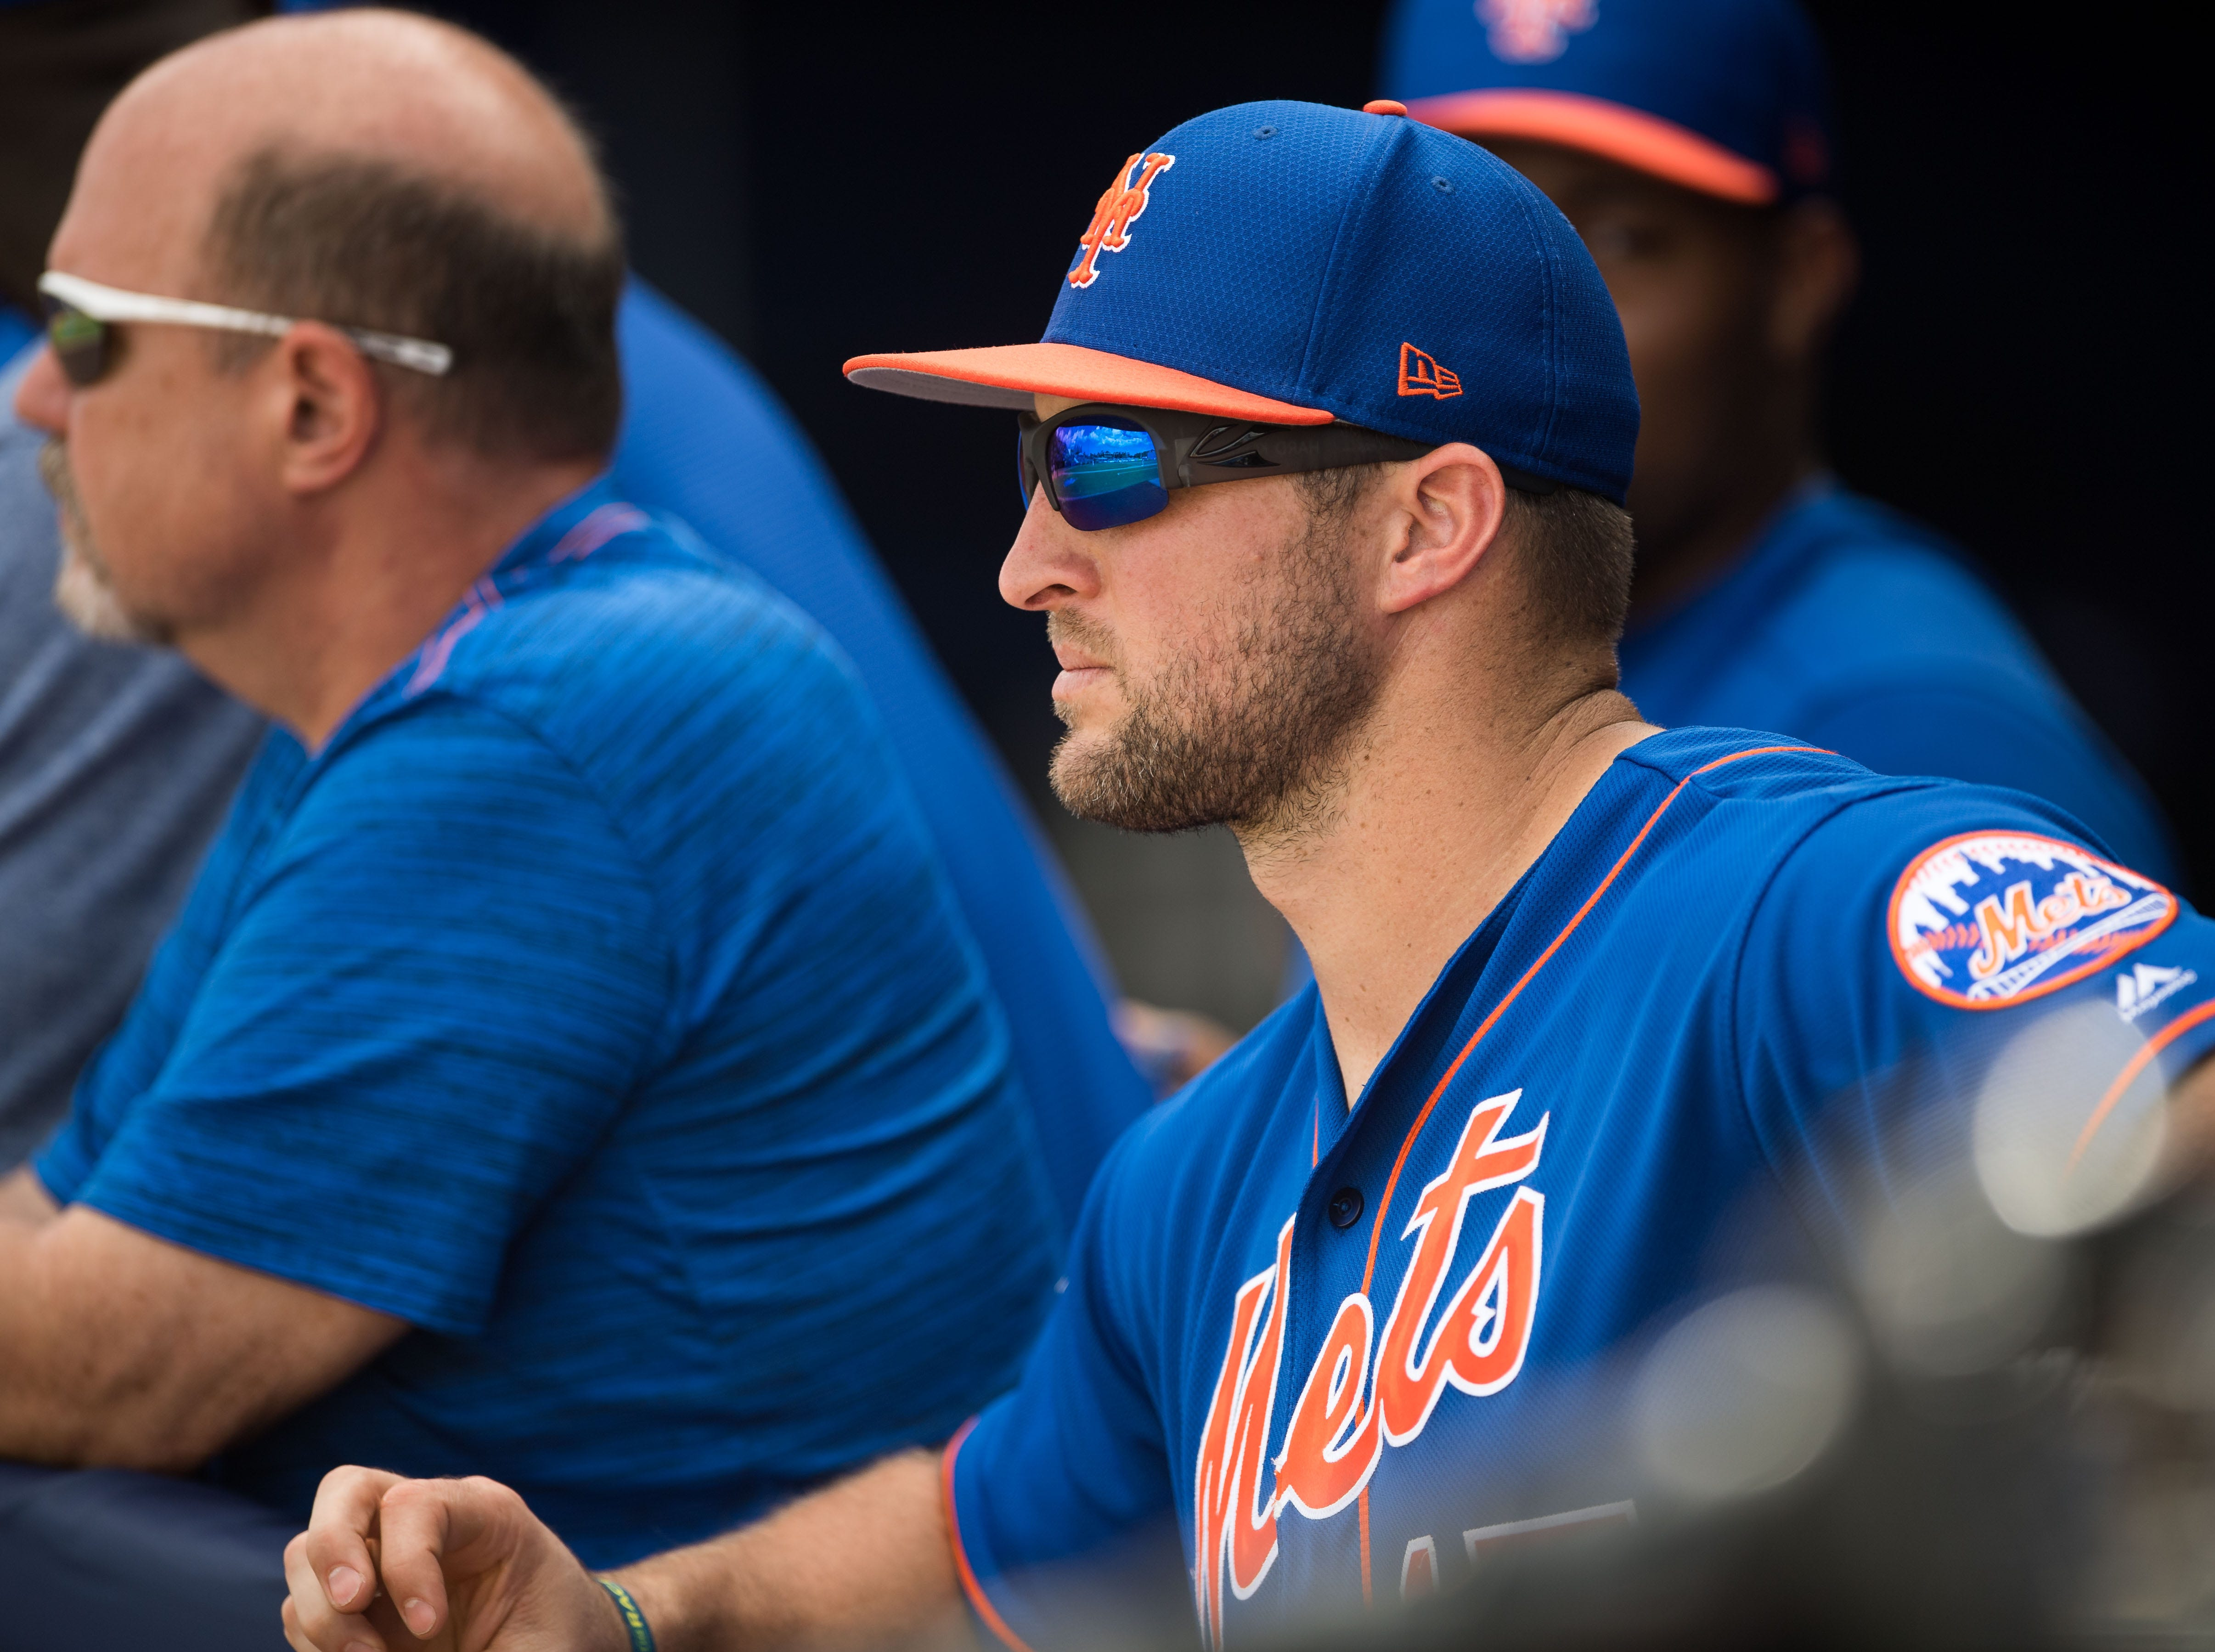 The New York Mets take on the Atlanta Braves during their first spring training game Saturday, Feb. 23, 2019, at First Data Field in Port St. Lucie.